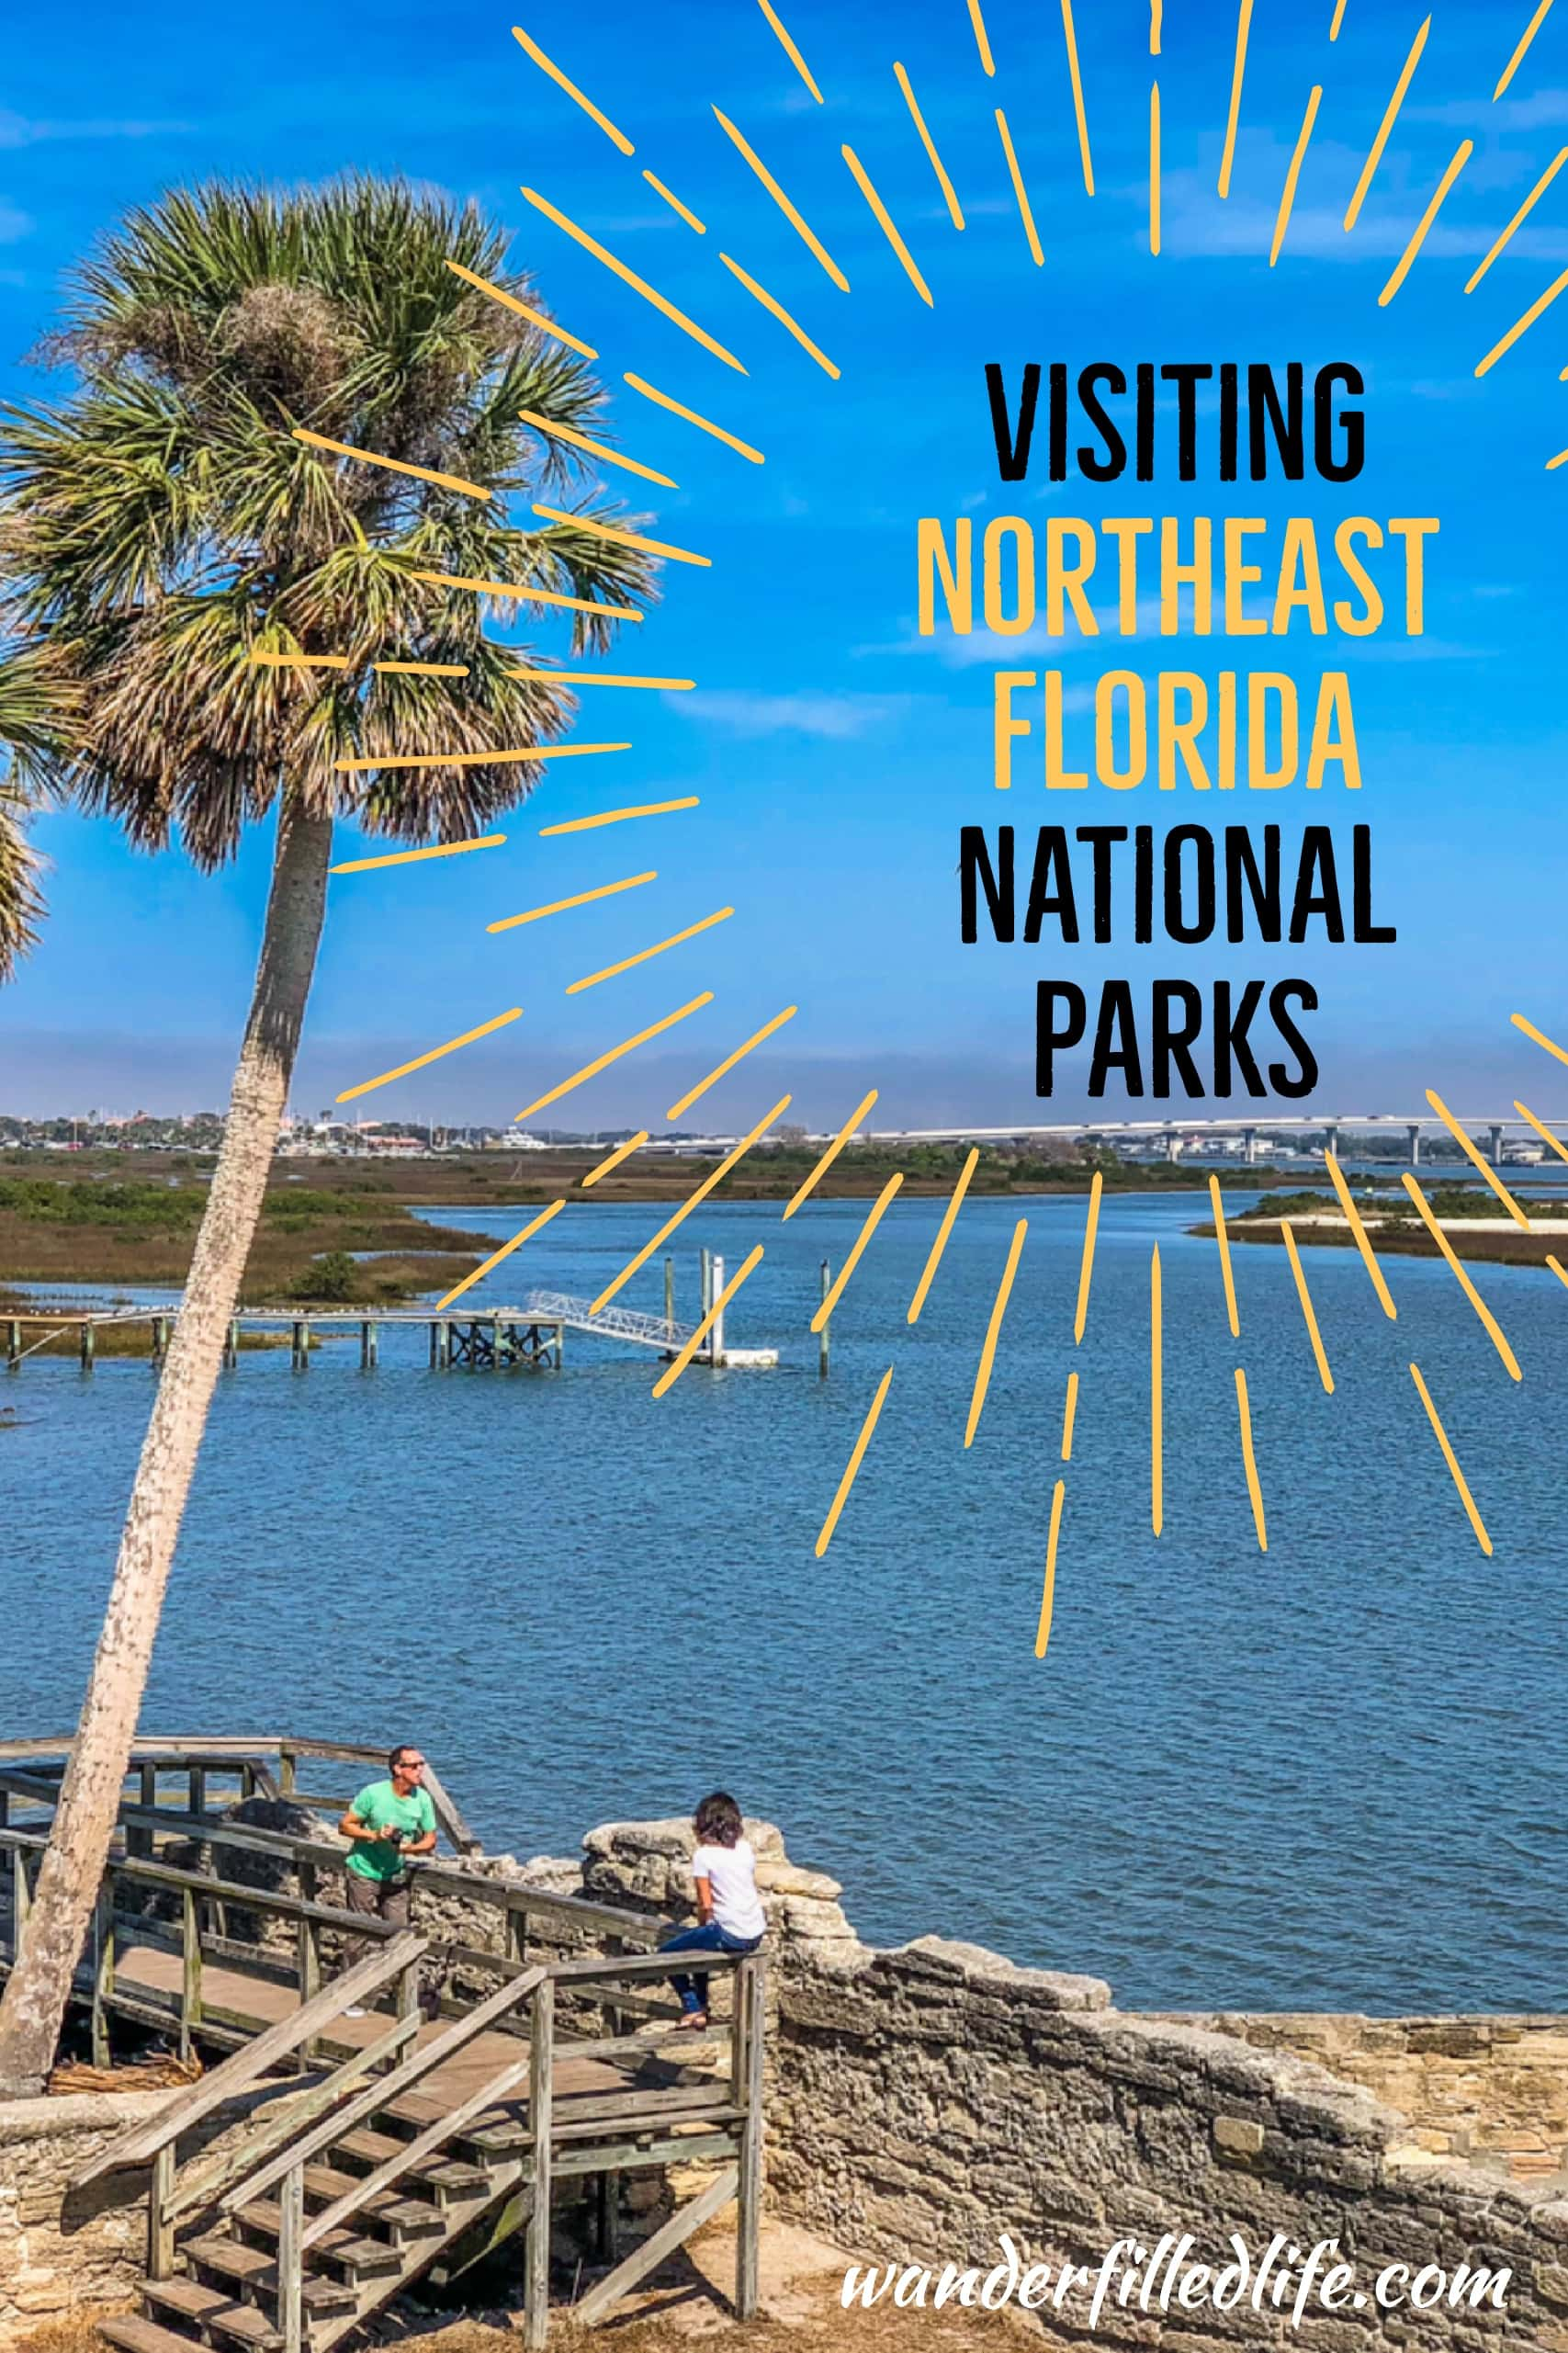 There's so much to discover in Northeast Florida. It is home to beautiful tidal ecosystems, a colonial history which spans centuries and the history of early settlers carving a life out of the wilderness. There's a lot more to the First and Space coasts than just the beach.